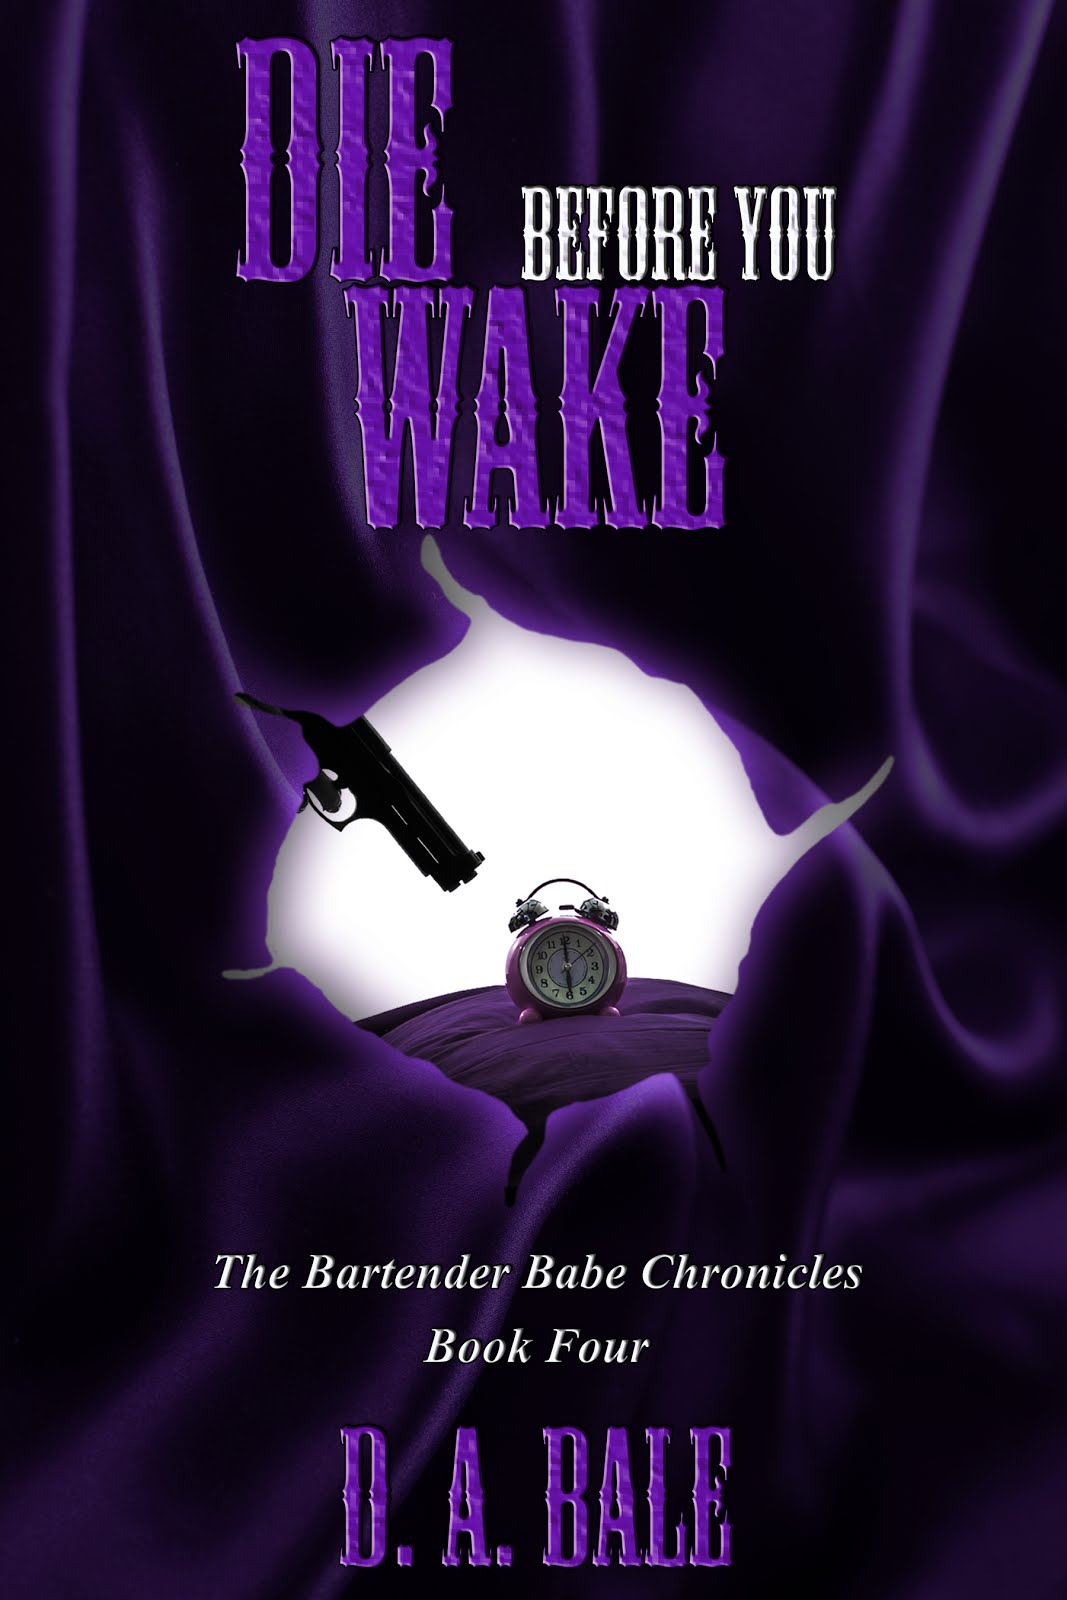 Purchase DIE BEFORE YOU WAKE on Amazon